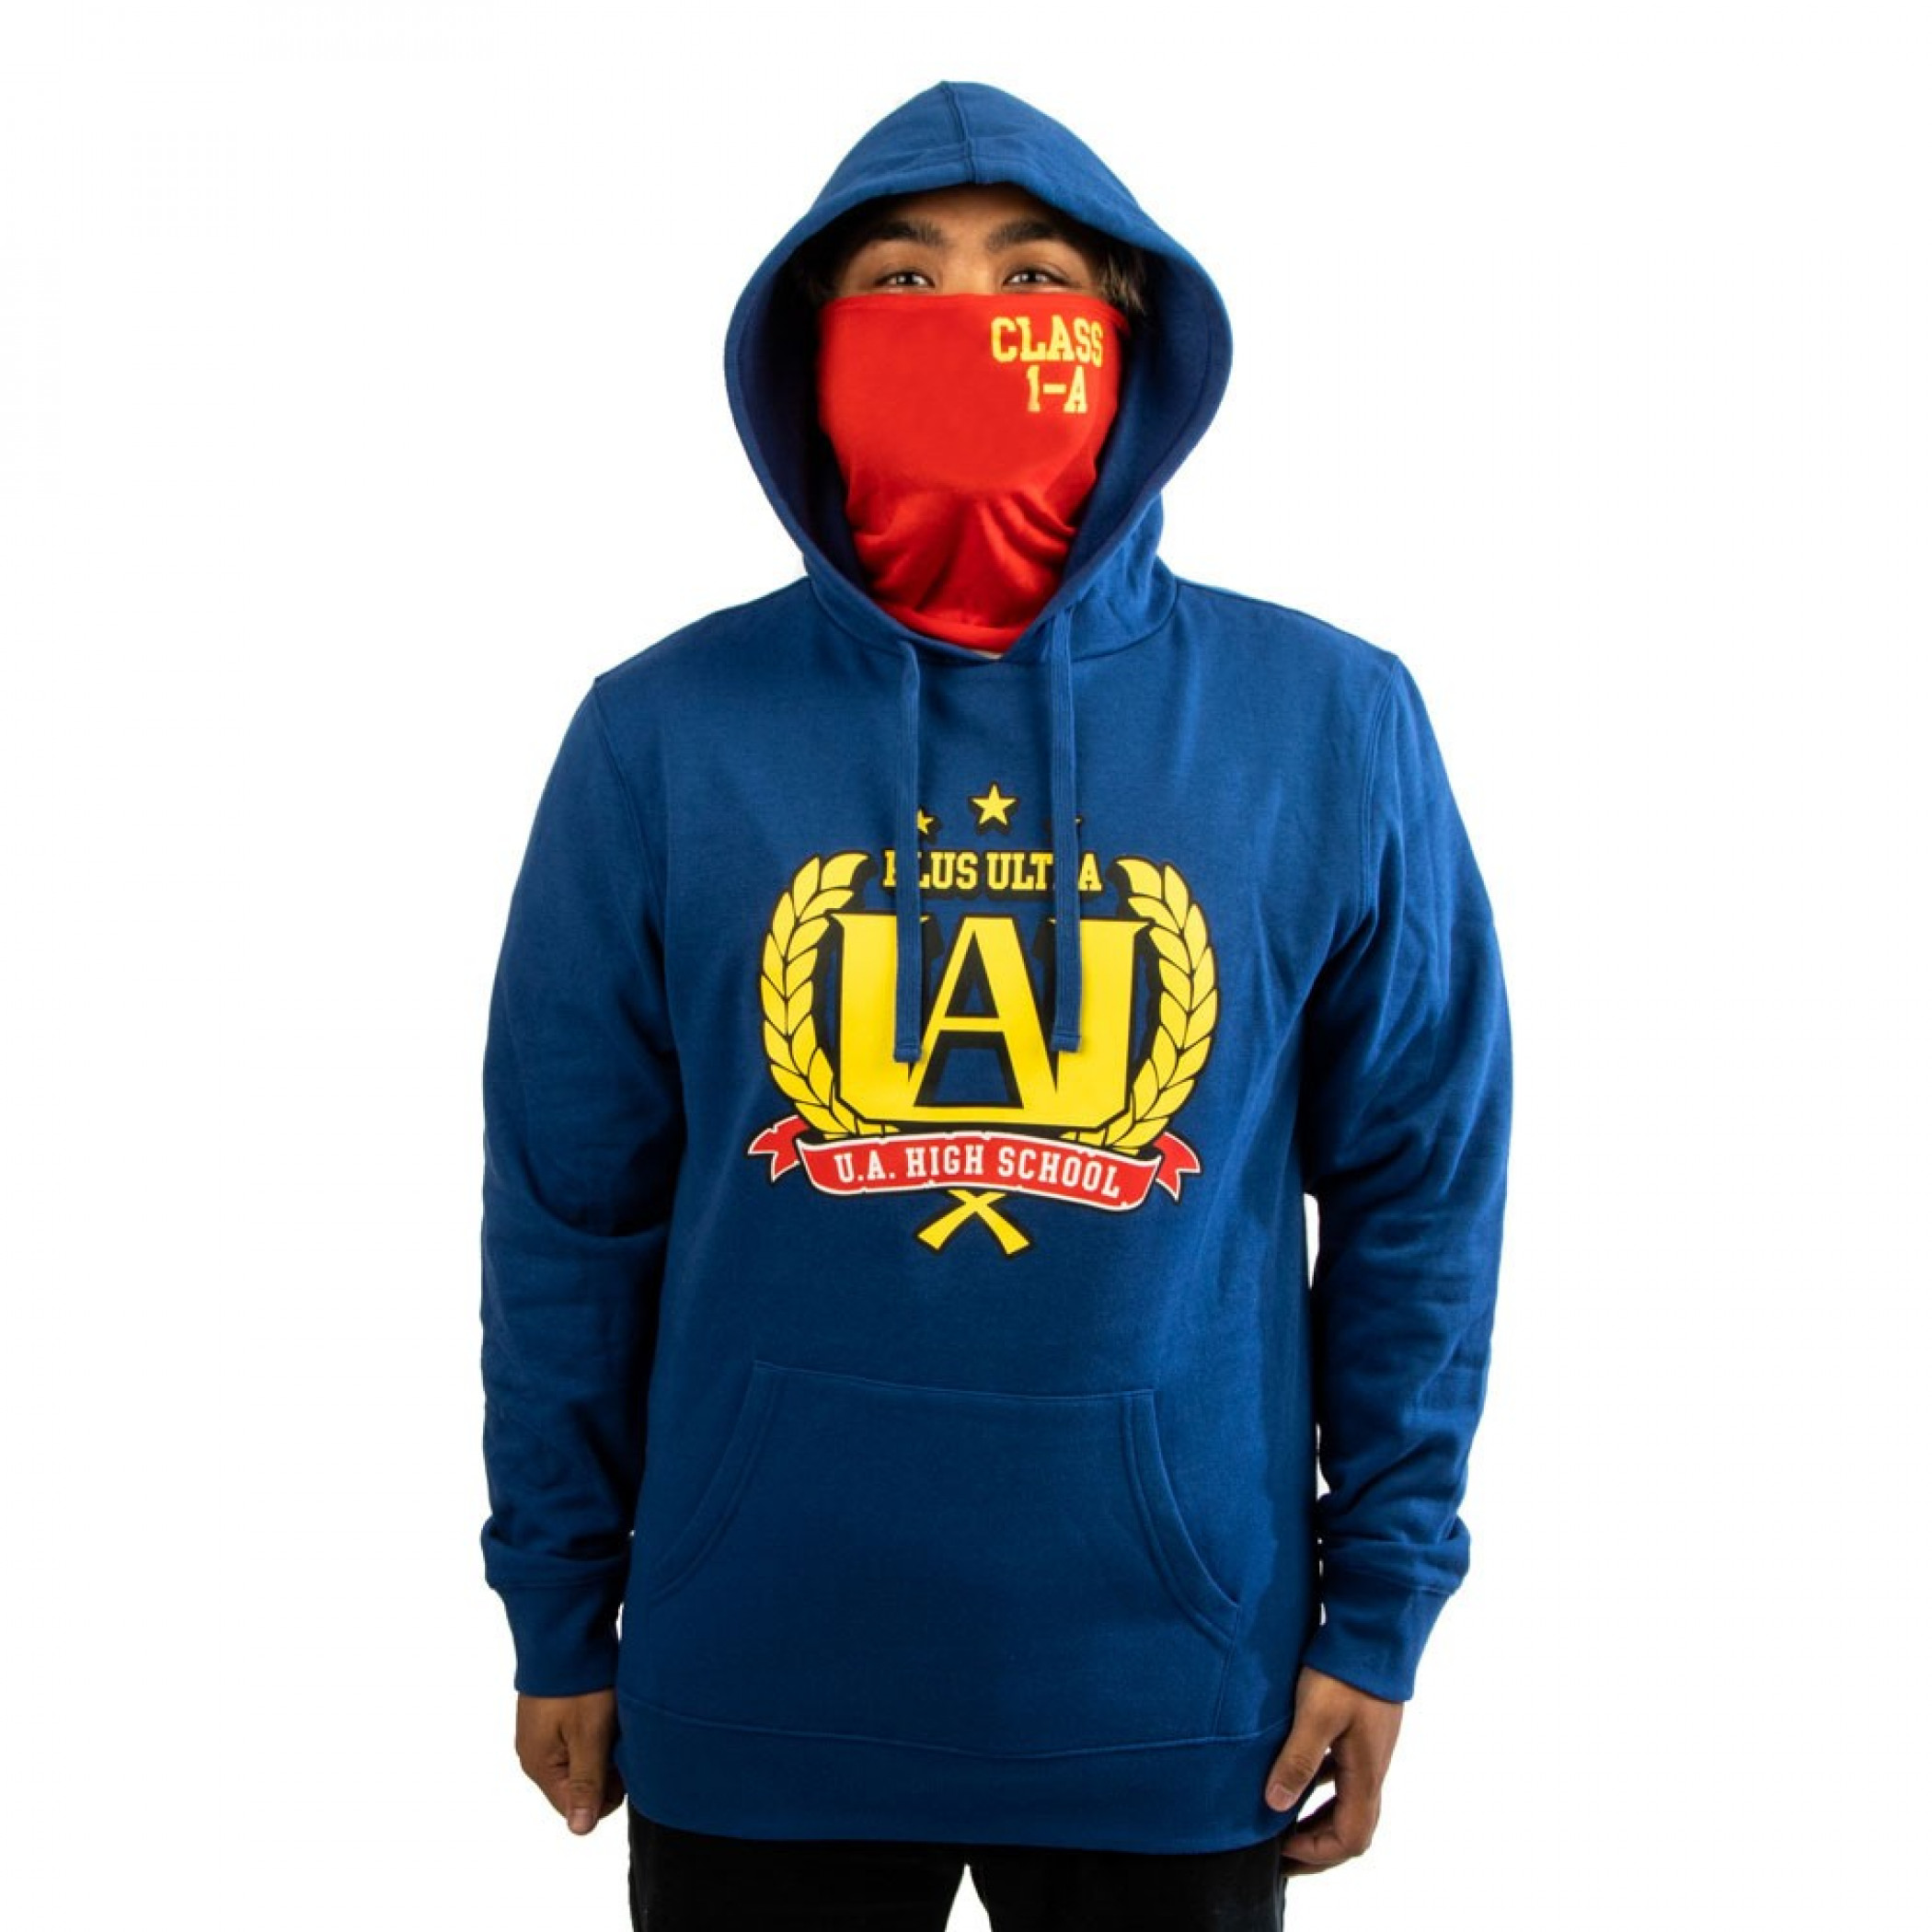 My Hero Academia Crest Hoodie with Built-in Face Mask Gaiter